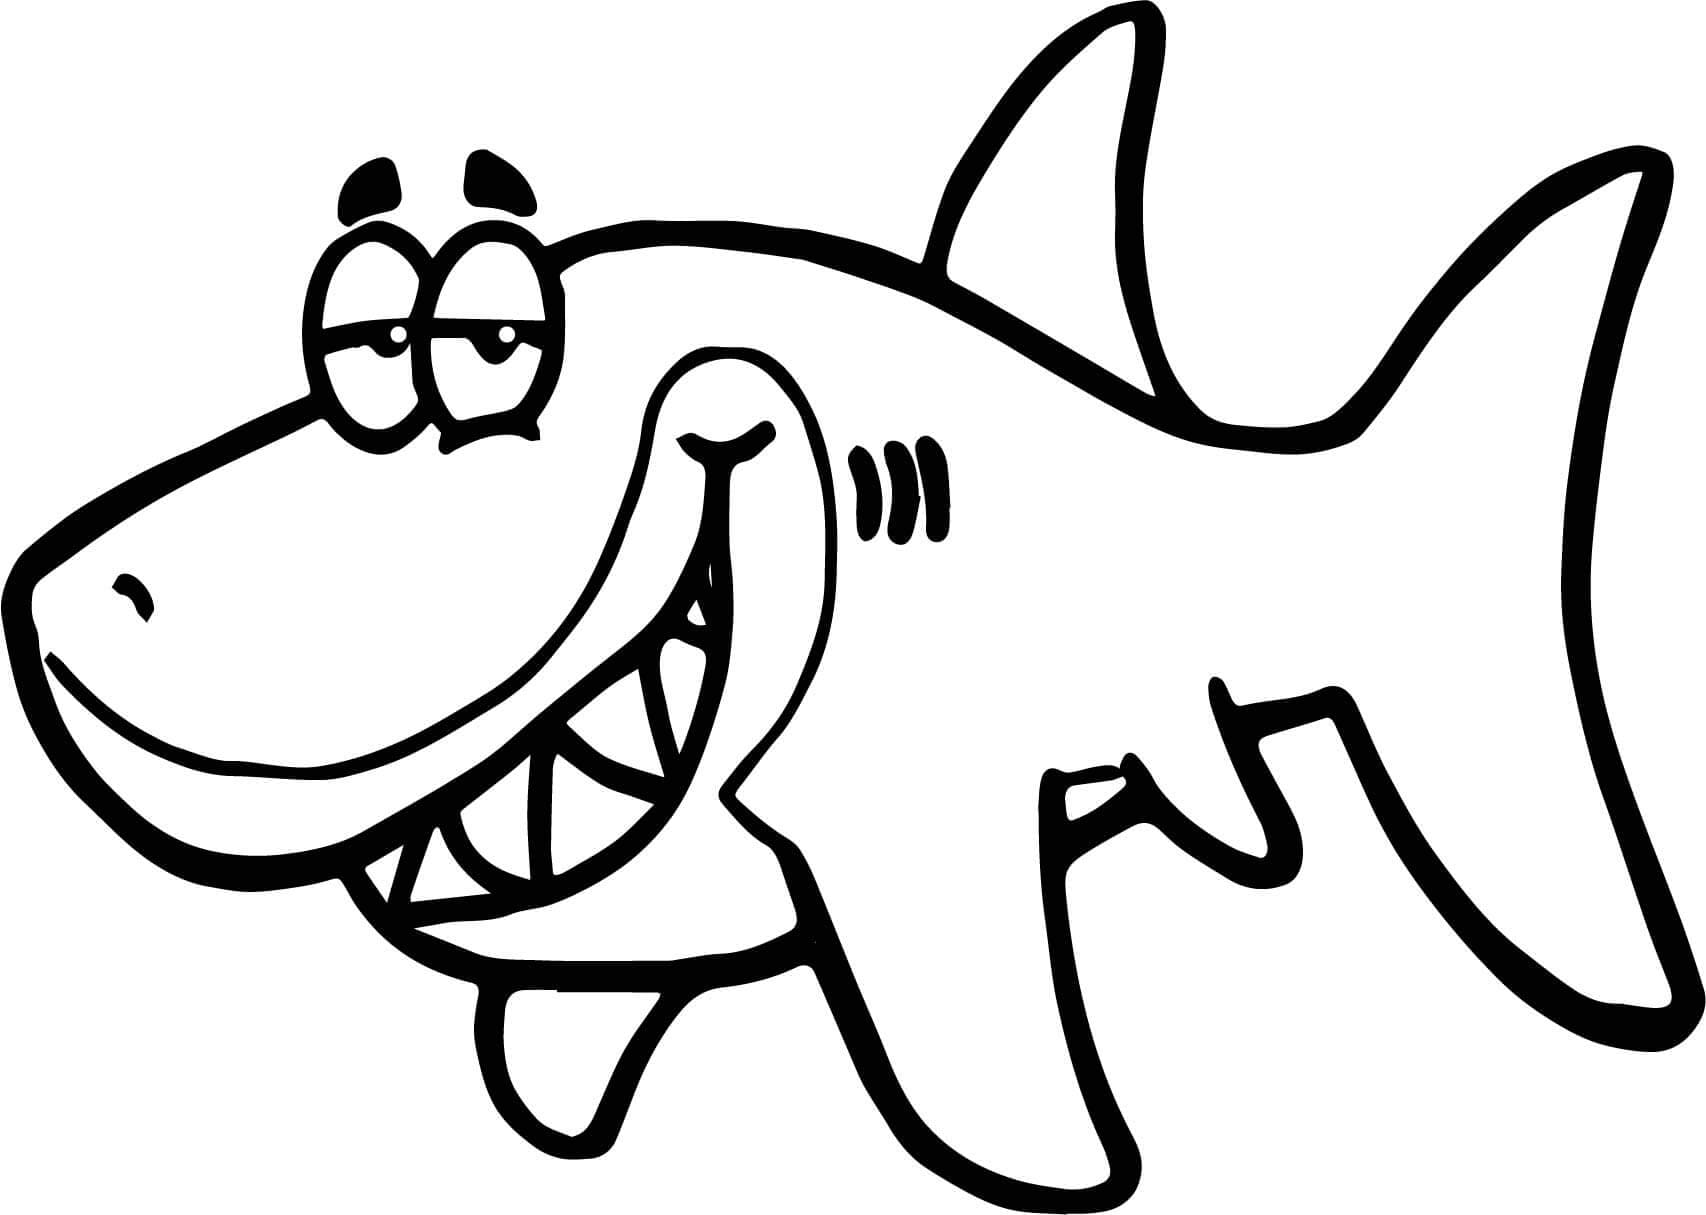 printable shark coloring pages free printable shark coloring pages for kids clipart pages shark printable coloring